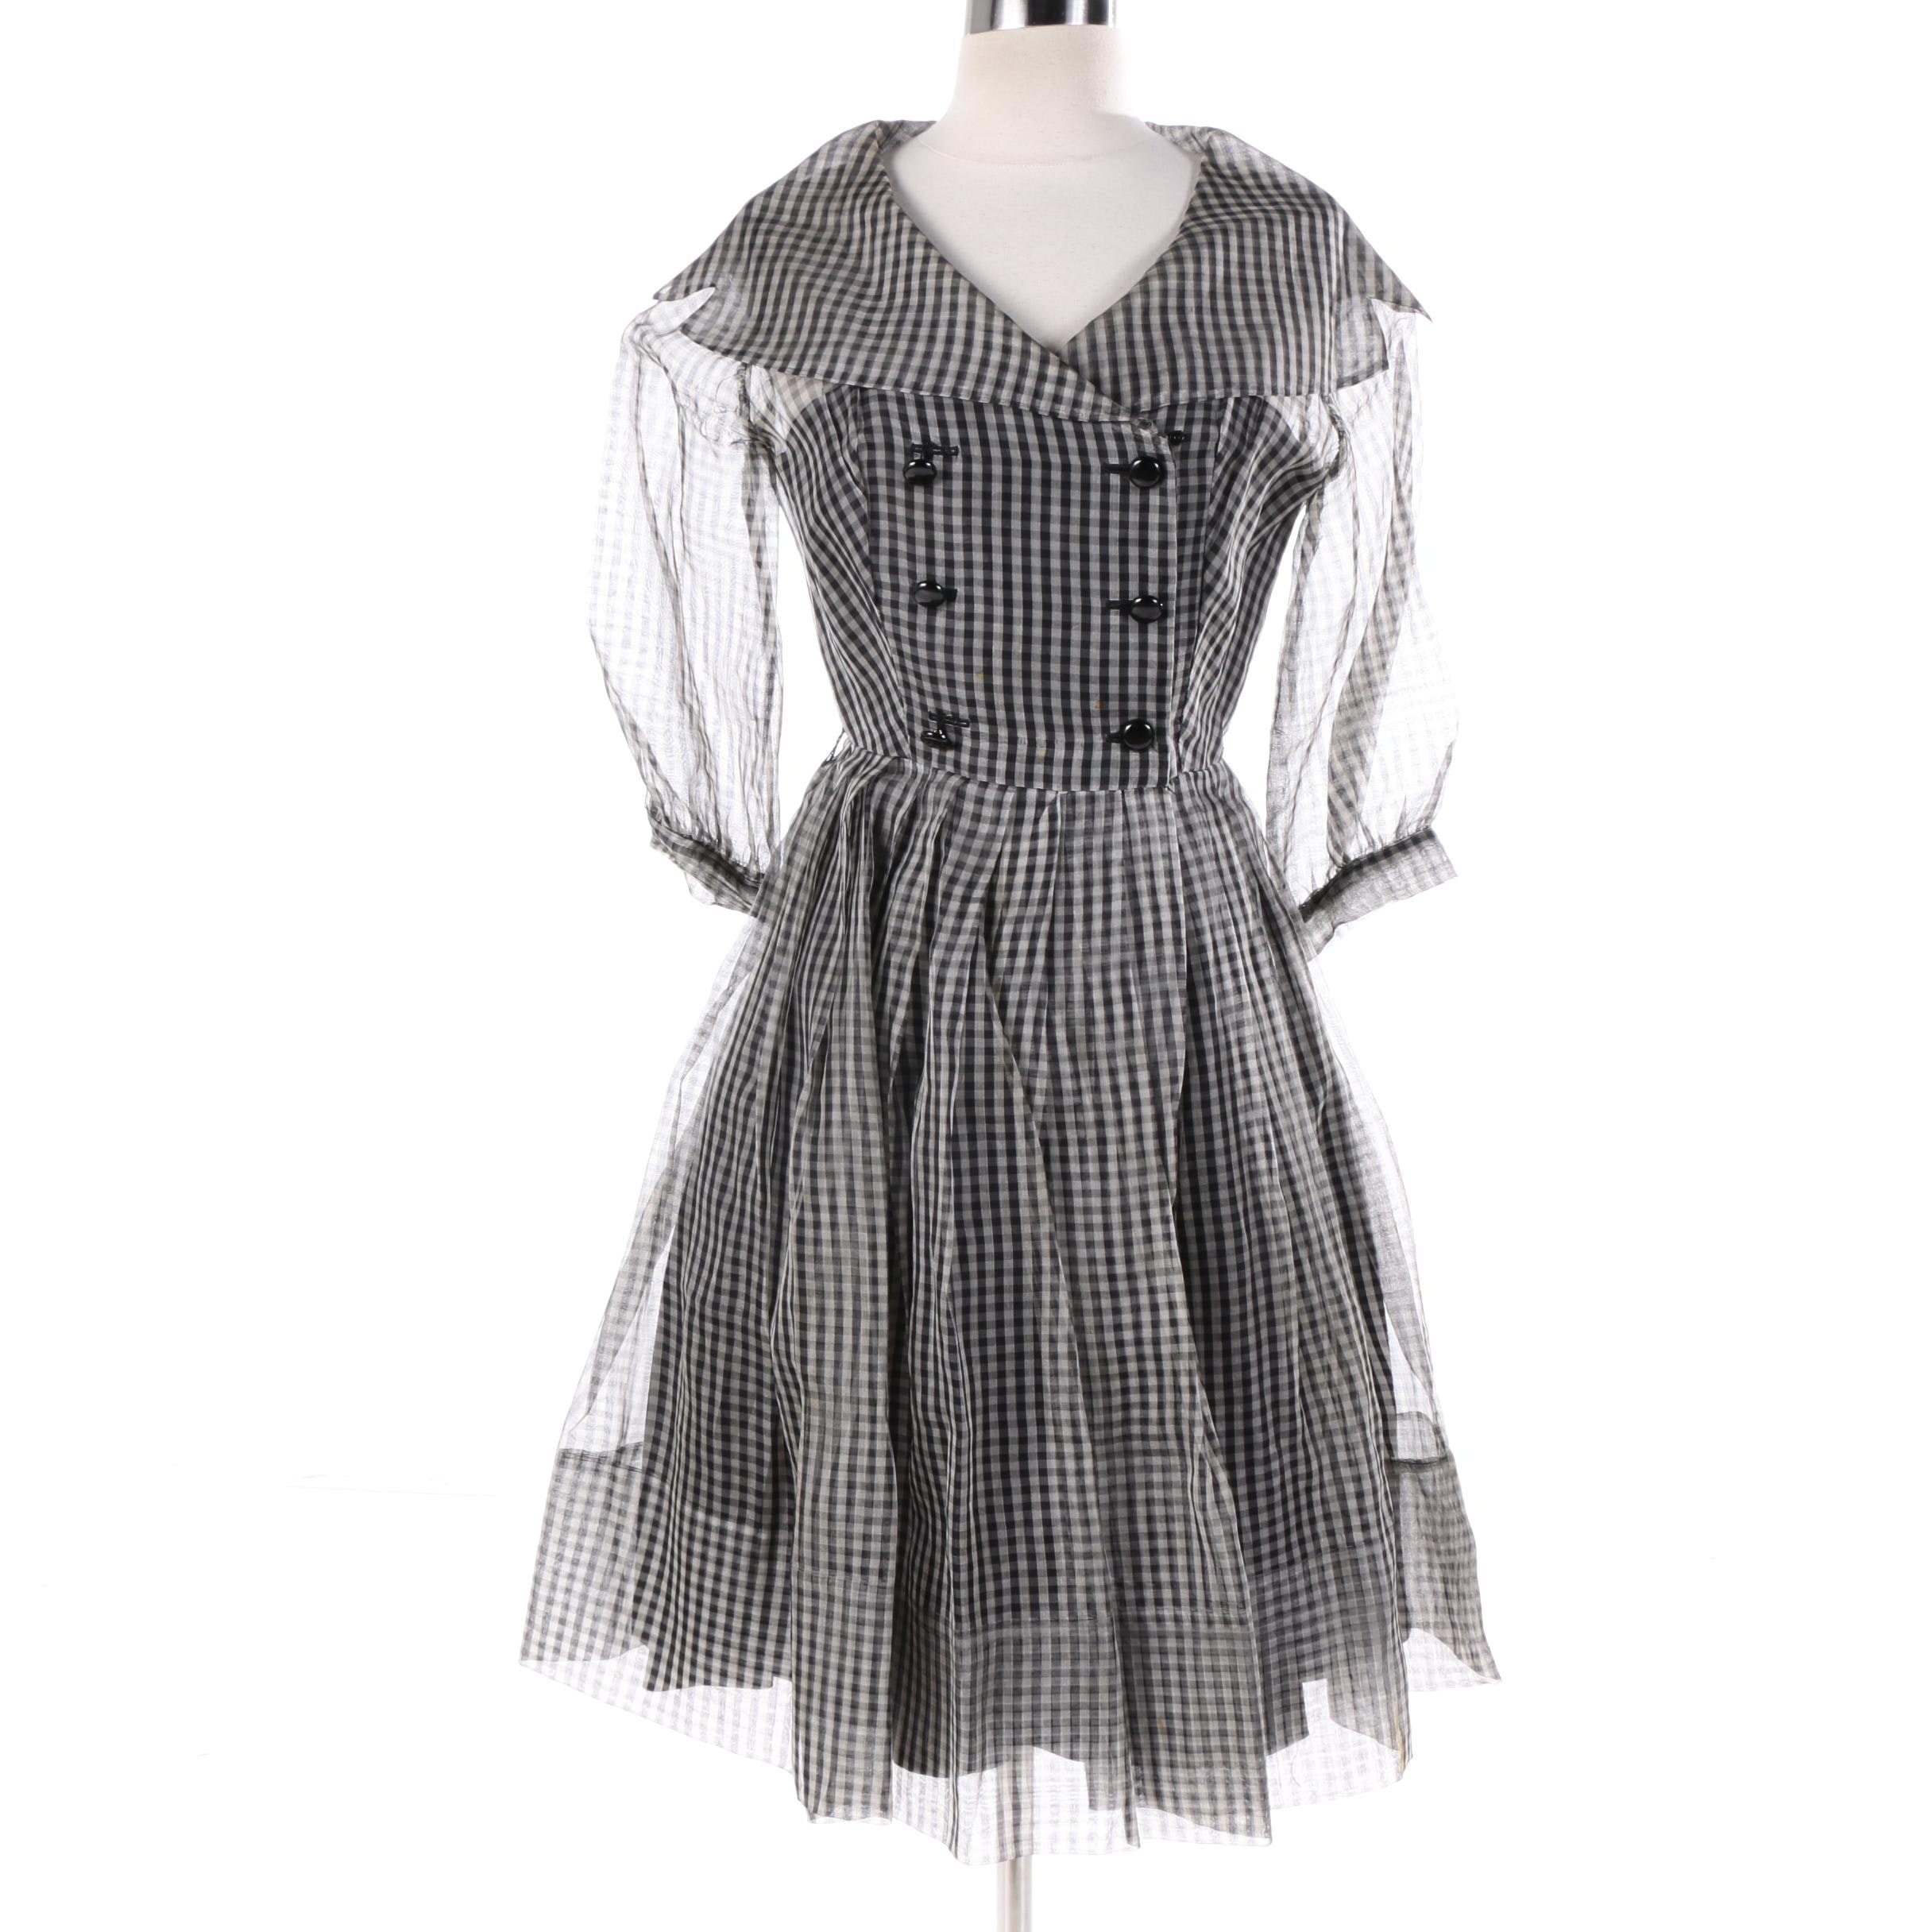 Circa 1950s Vintage Black and White Gingham Double-Breasted Shirtwaist Dress